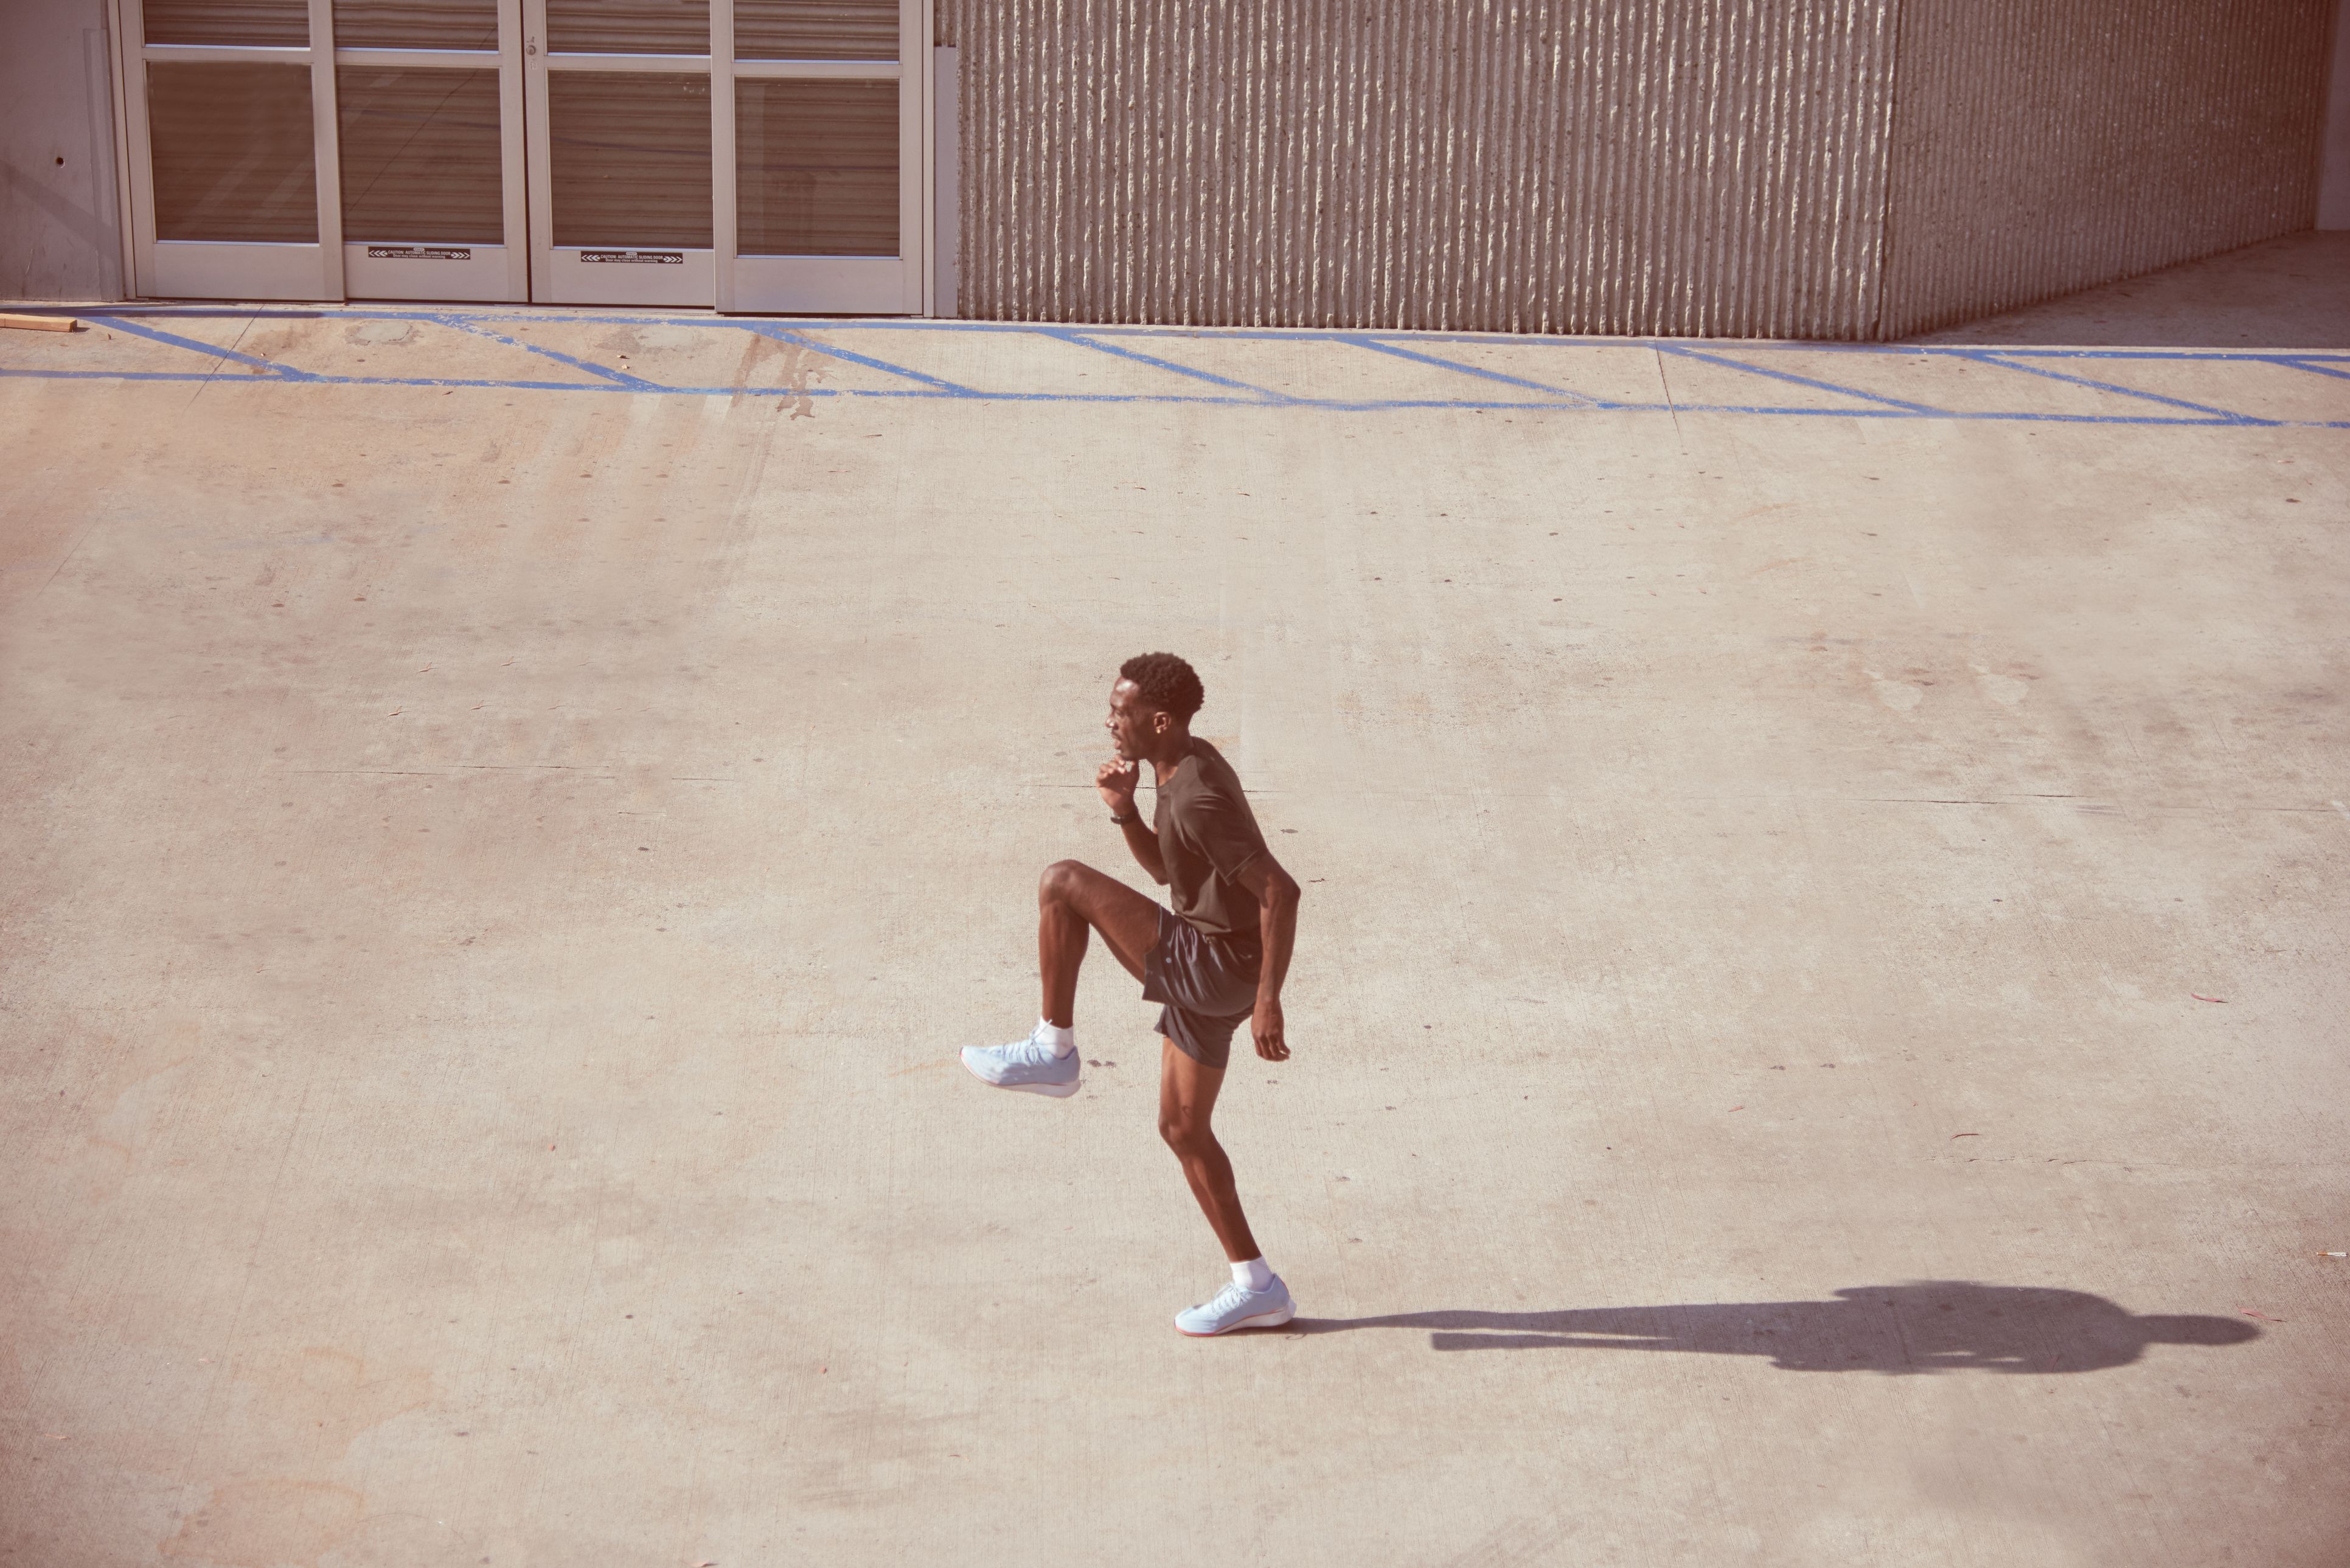 Athlete exercises in parking lot